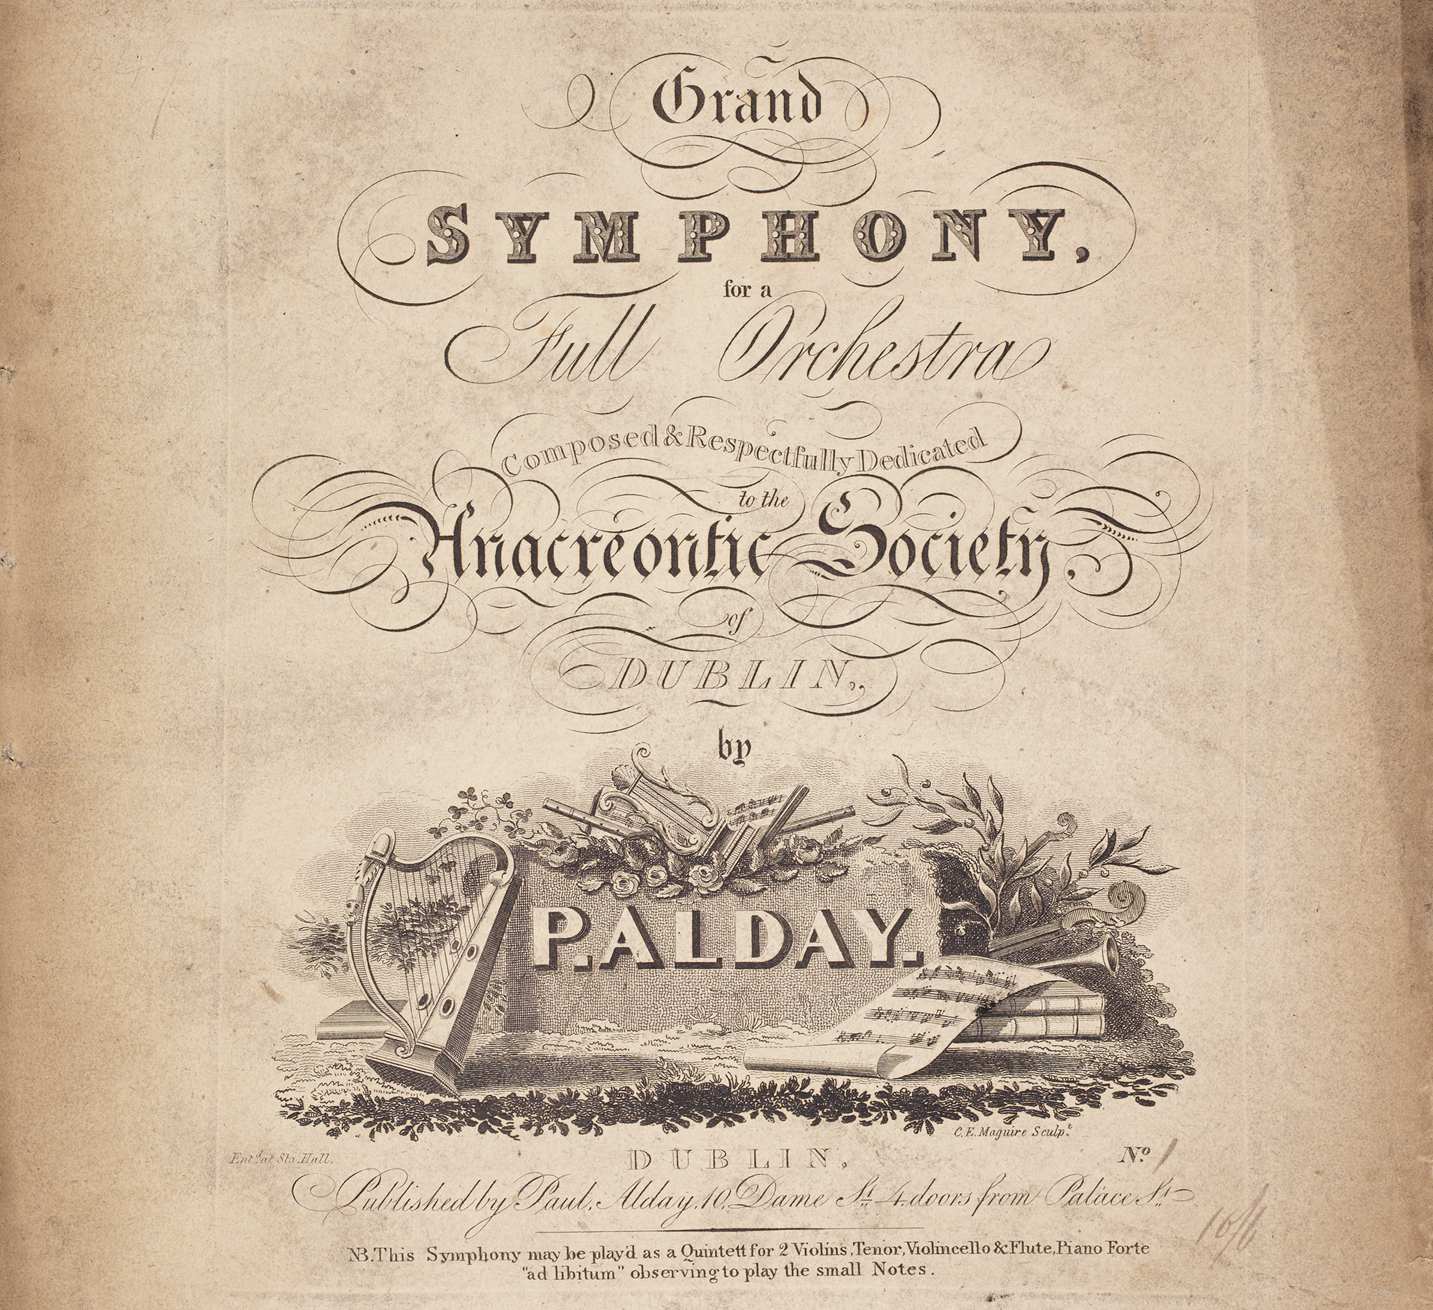 A Symposium On The Symphony And Ireland Takes Place 20 April